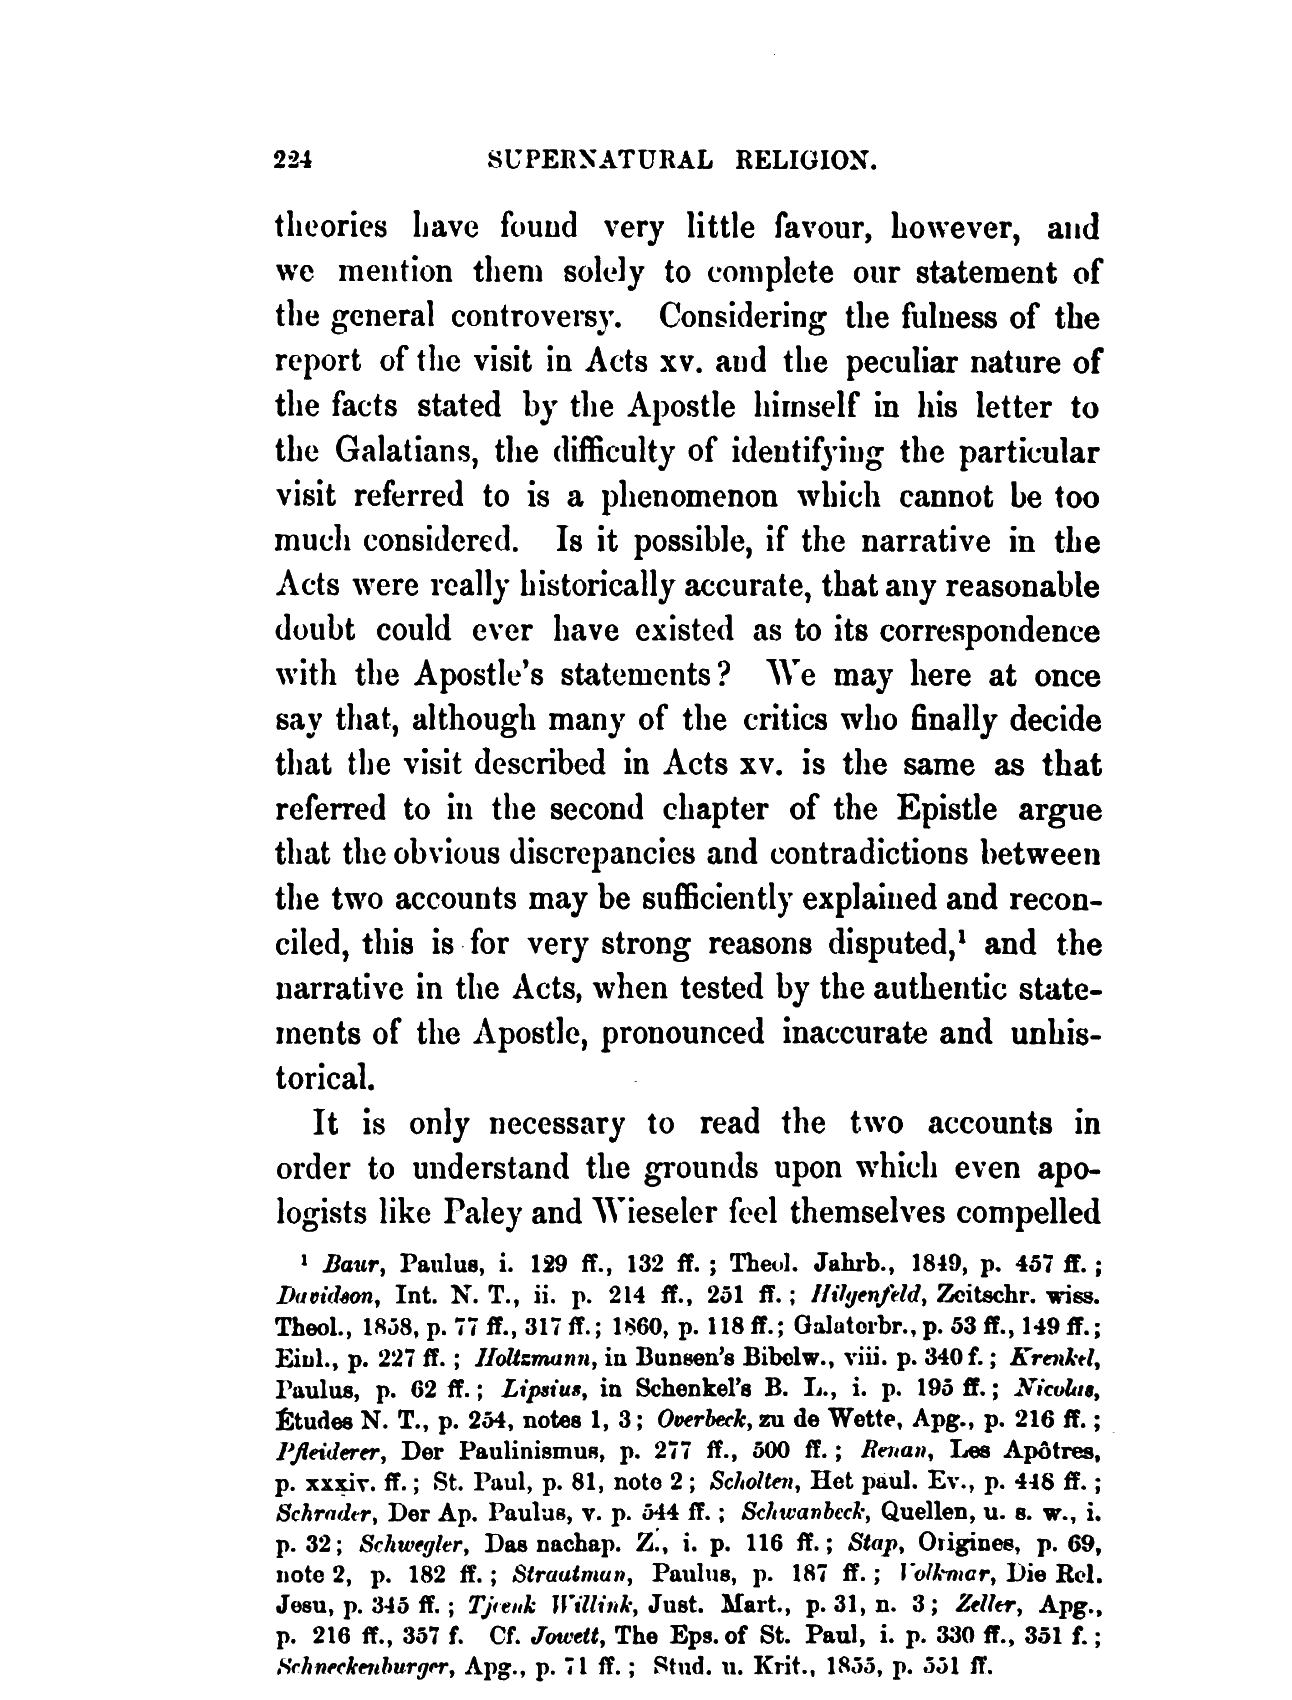 '[224]' from the web at 'http://www.gutenberg.org/files/37233/37233-h/pgimages/224.png'